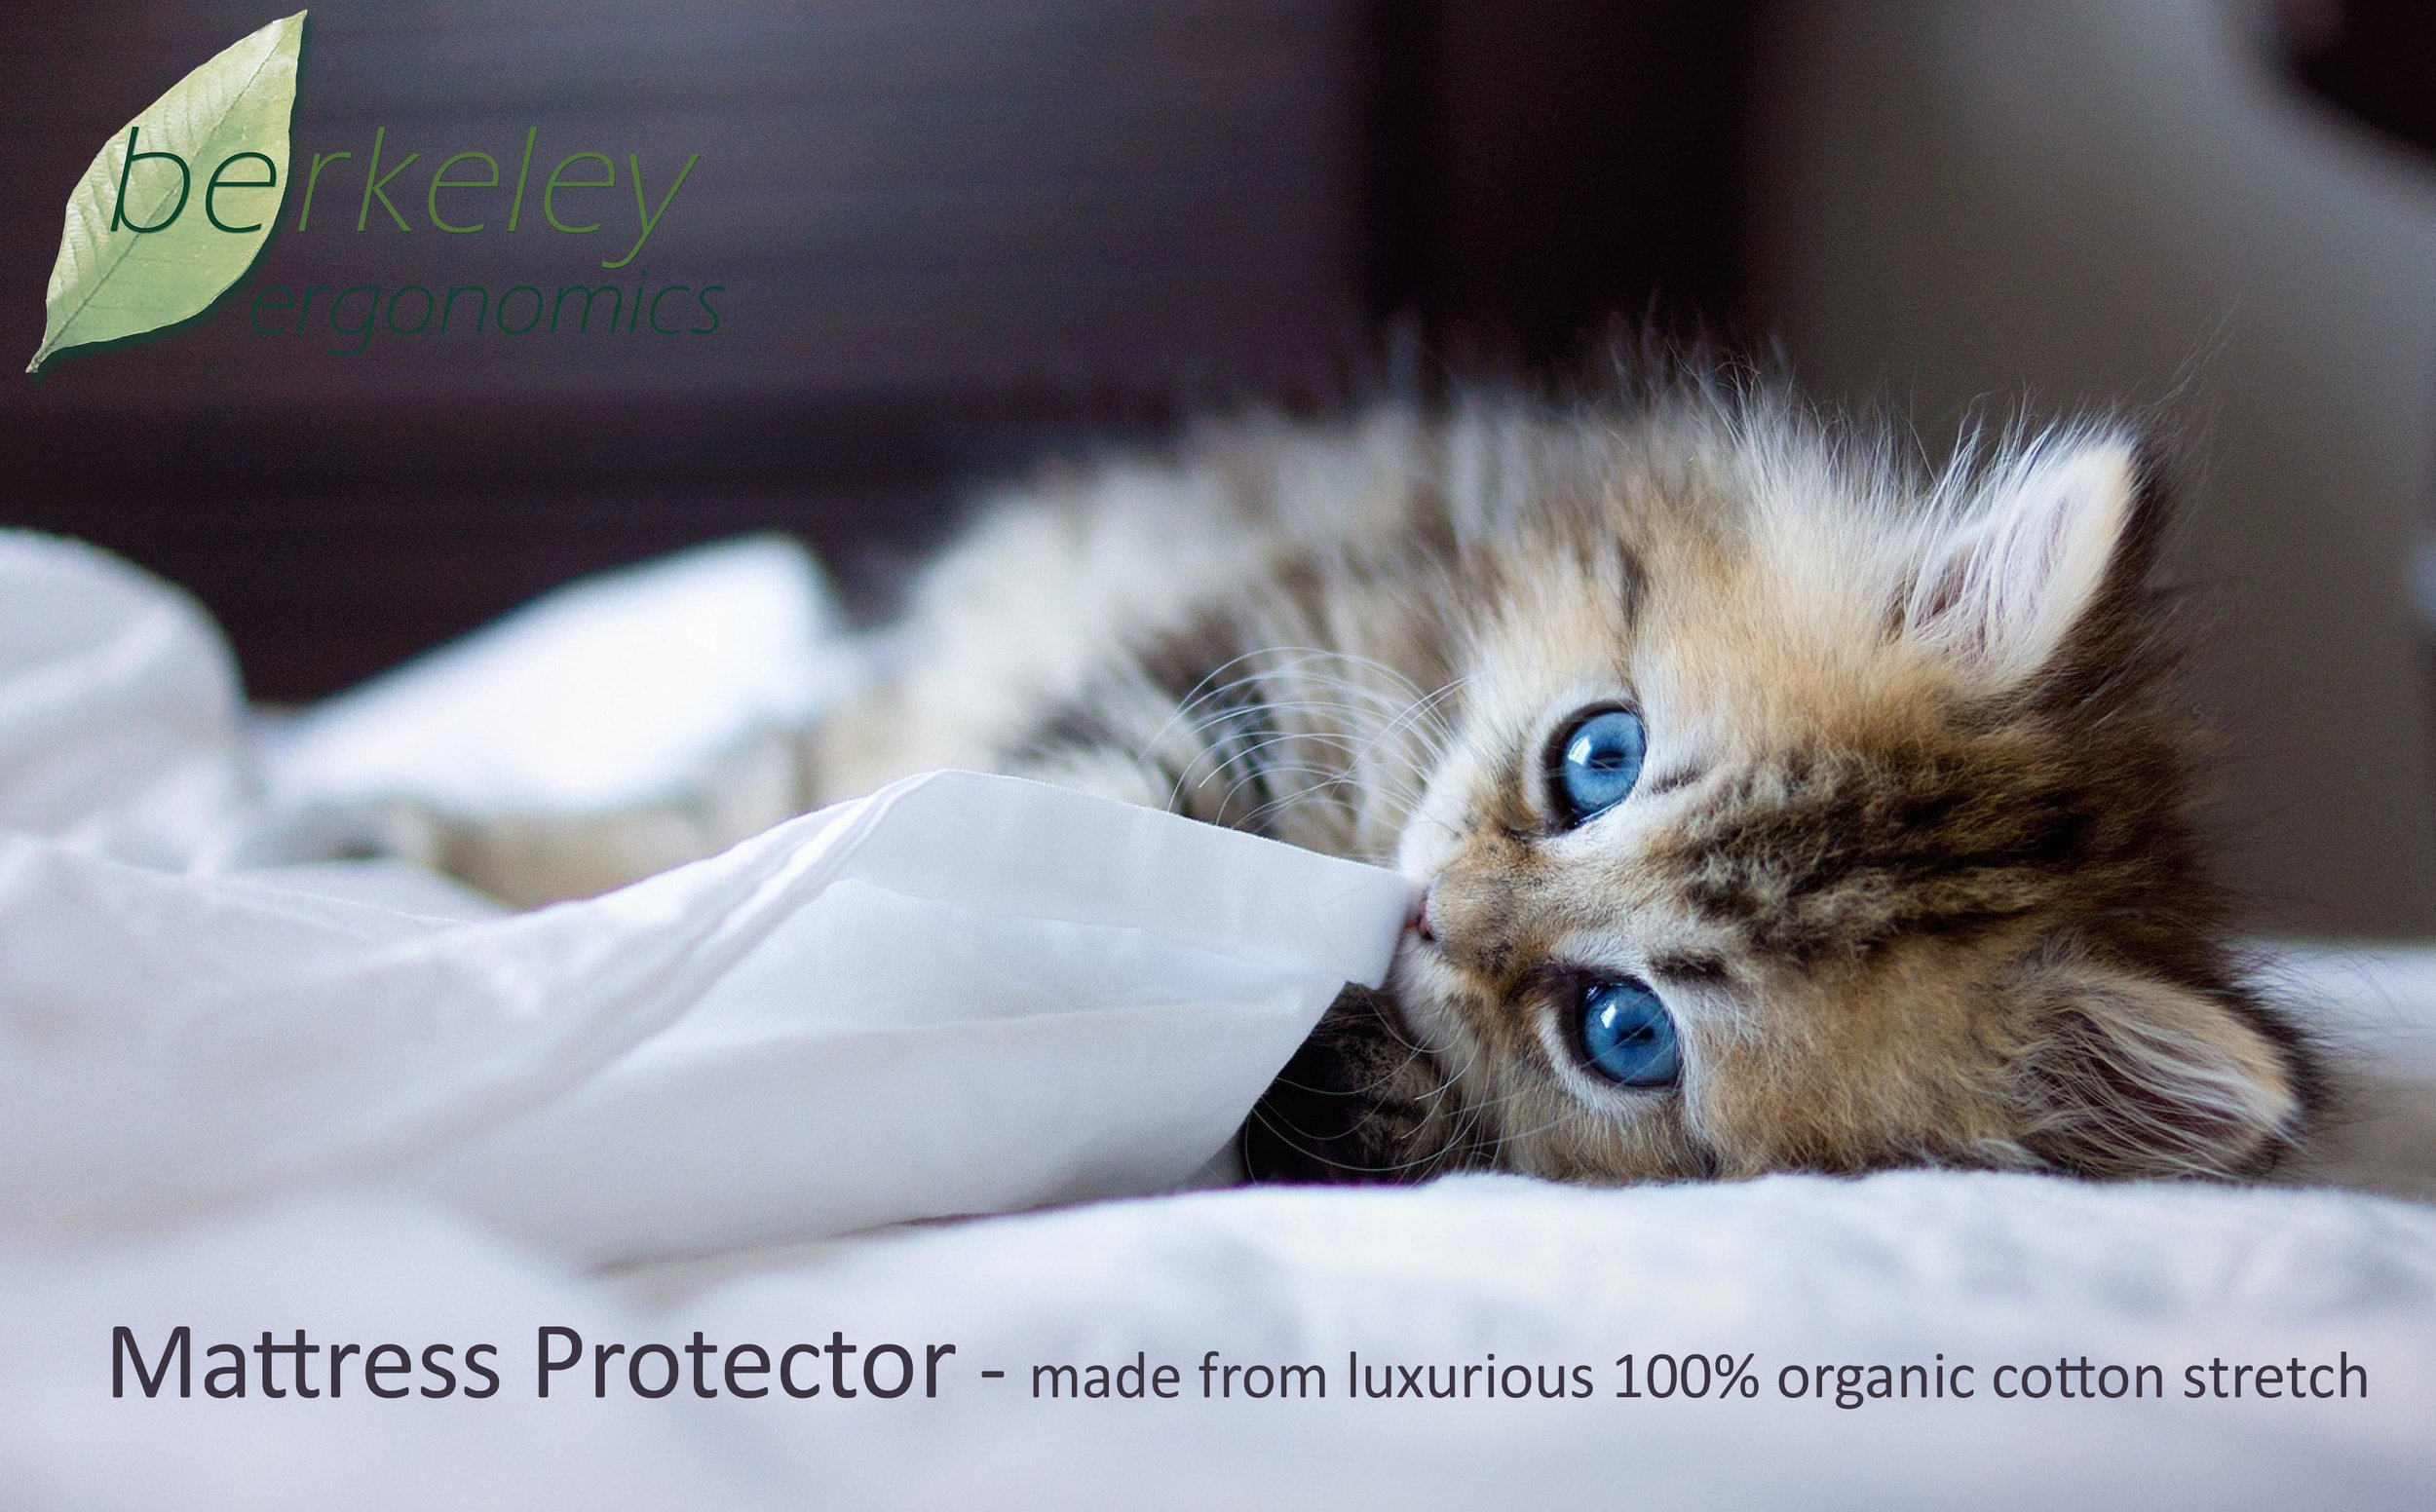 MATTRESS PROTECTOR - PROTECT YOUR INVESTMENT